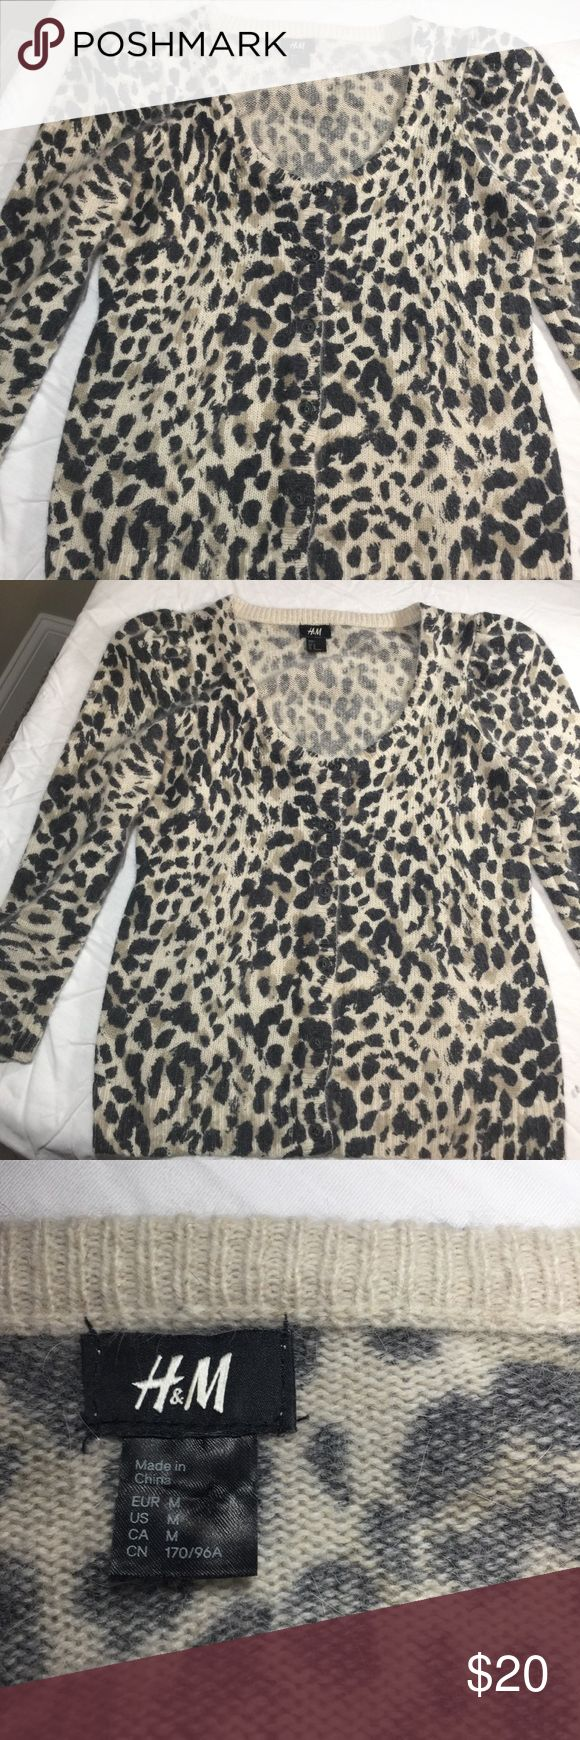 H & M animal print cardigan 3/4 sleeve size medium H & M animal print button up cardigan with 3/4 sleeve. Fabric is soft and slightly fuzzy. Size medium. Measurements in picture. H&M Sweaters Cardigans